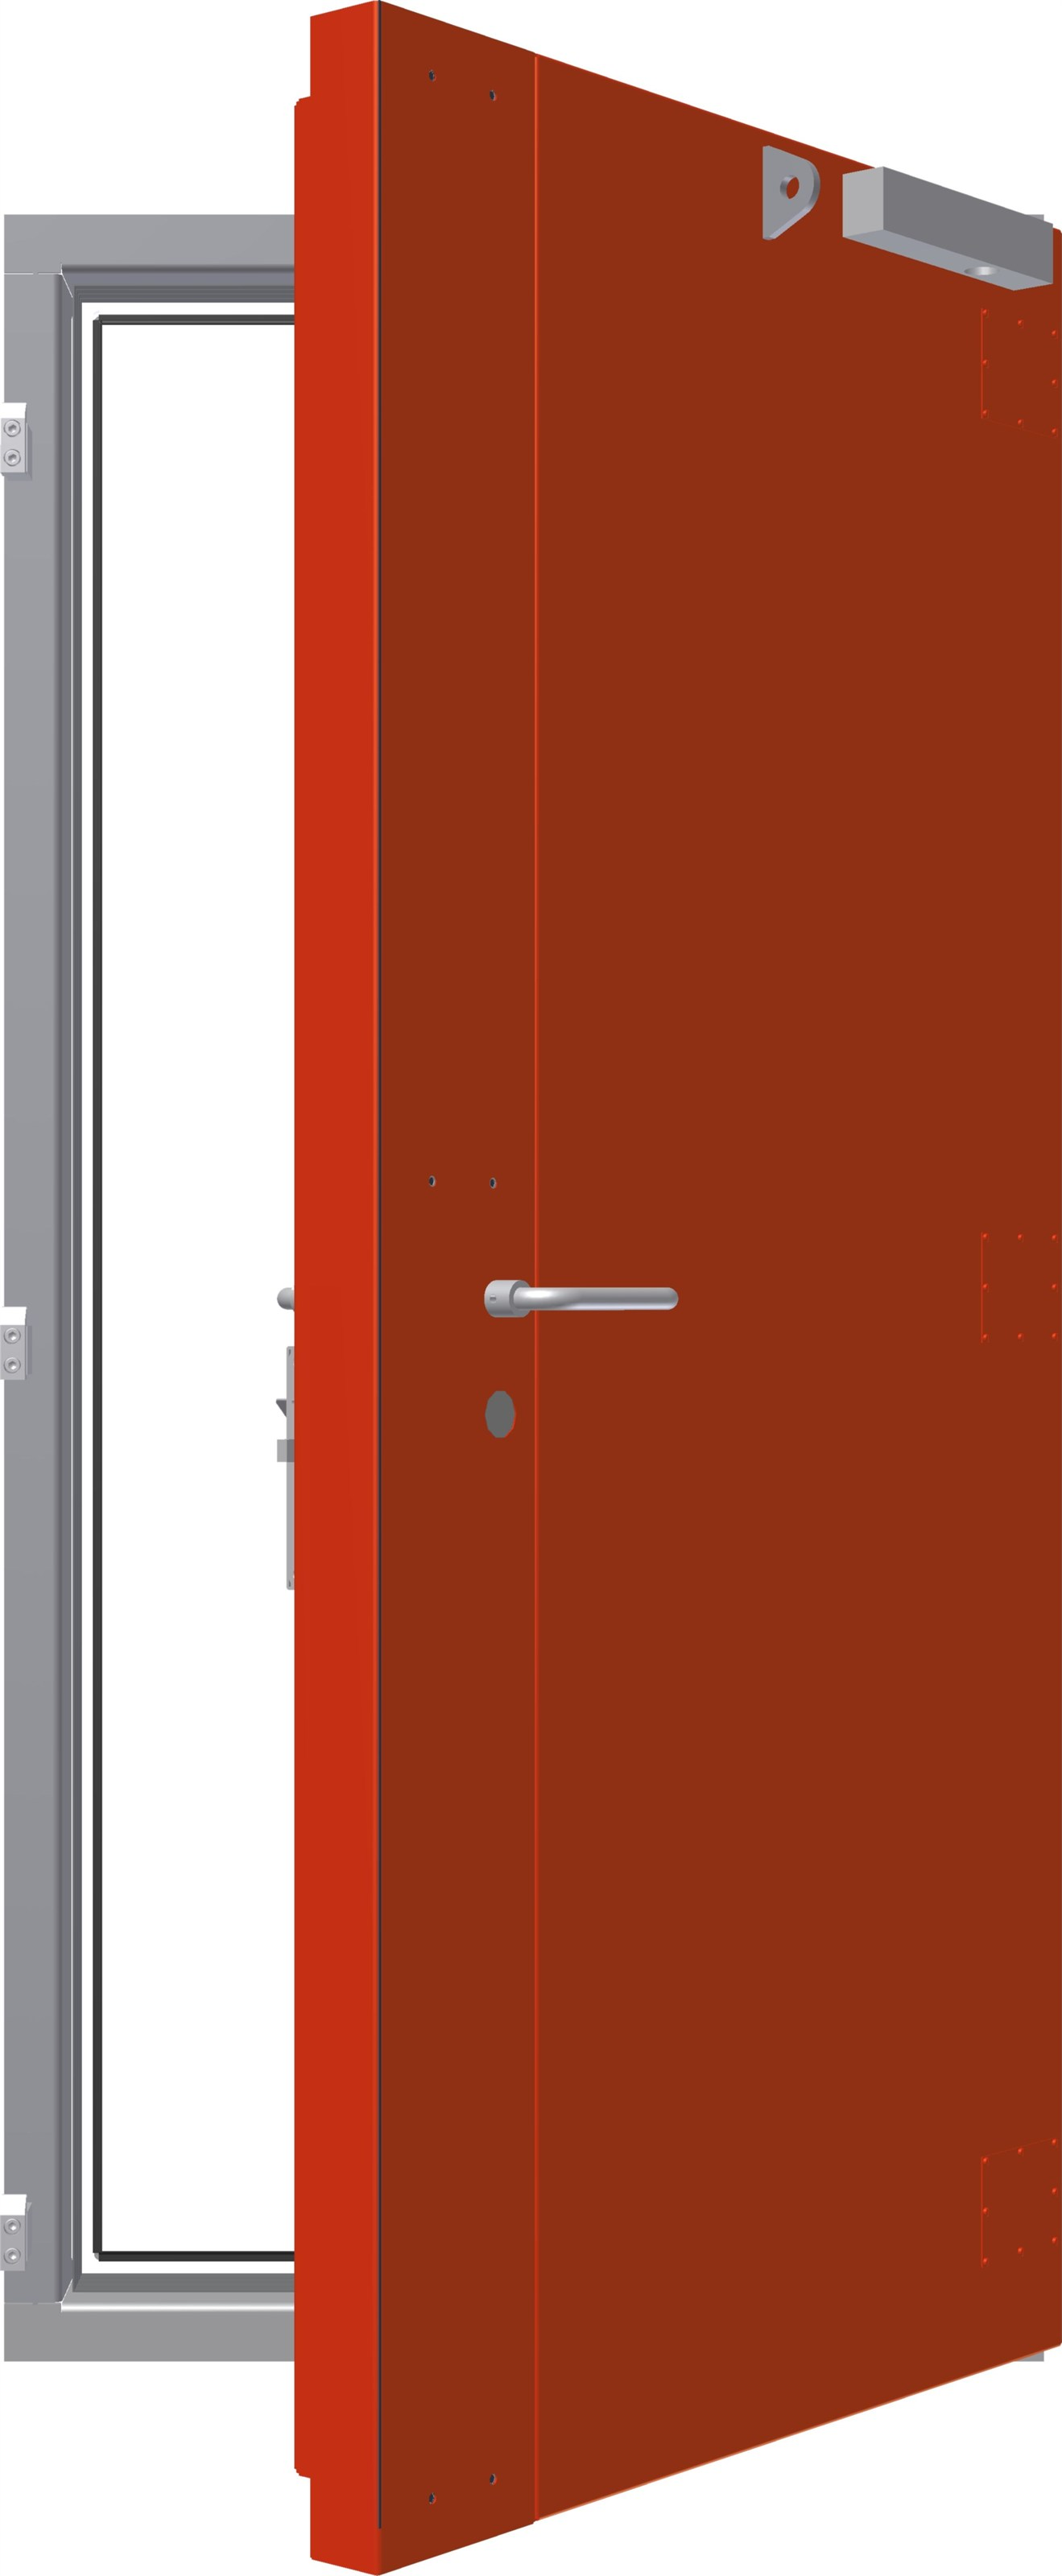 Fire rated hinged doors : hinged doors - pezcame.com